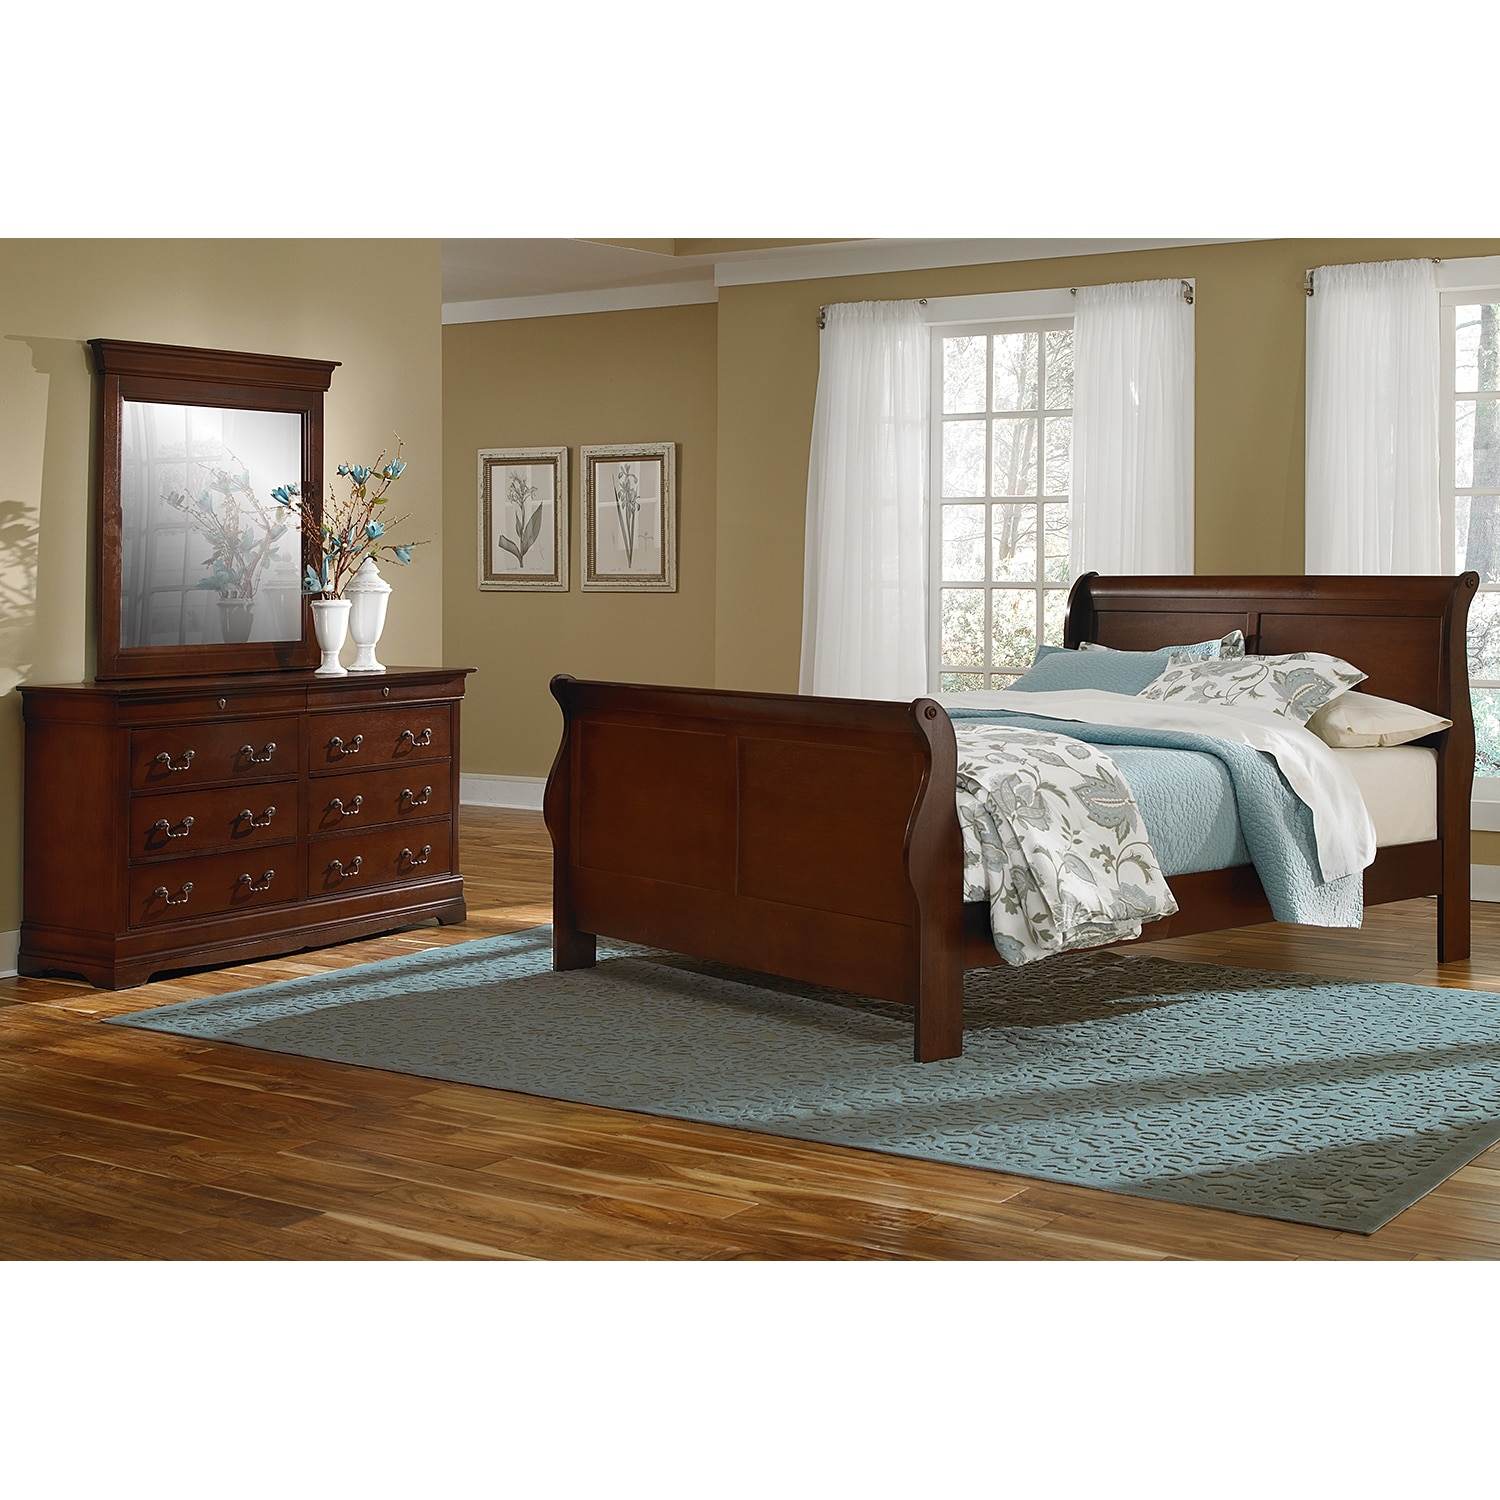 Kids Furniture - Neo Classic Youth 5-Piece Full Bedroom Set - Cherry